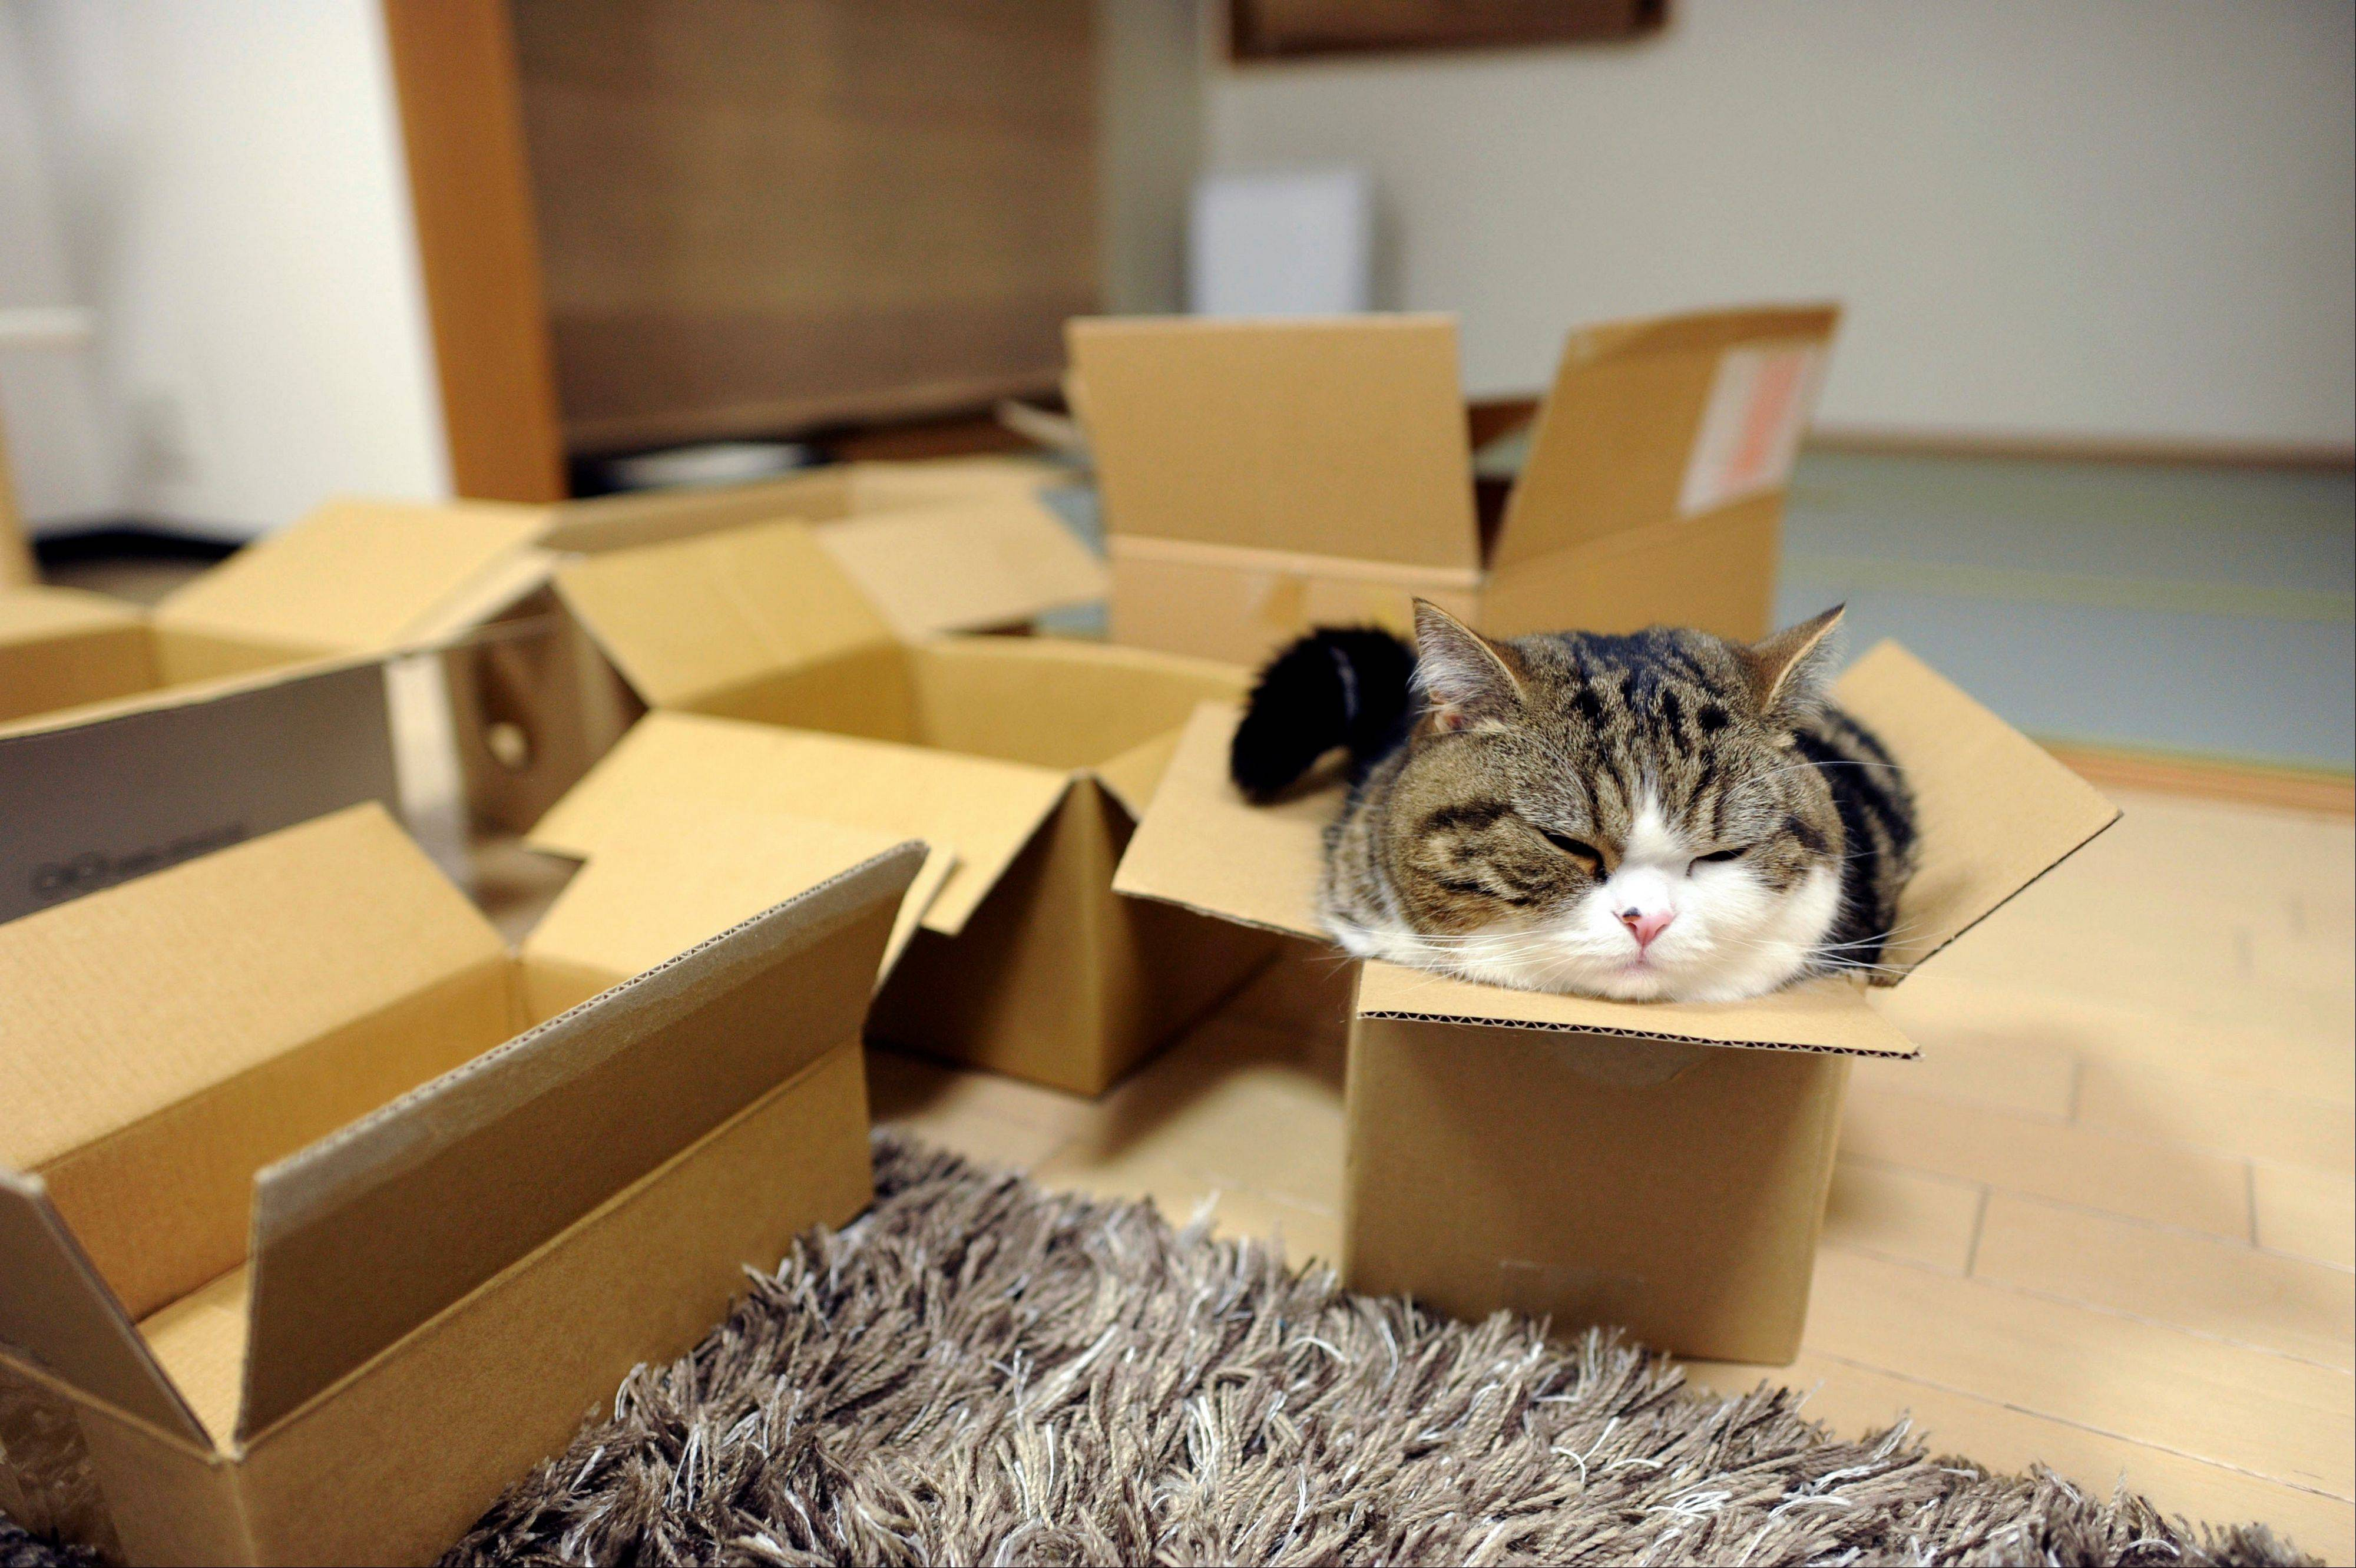 Scottish fold Maru rests in a cardboard box in Japan. After years of viral YouTube viewing and millions of shares, the cat stars of the Internet are coming into their own in lucrative and altruistic ways. Roly poly Maru, the megastar in Japan with millions of views for nearly 300 videos since 2007, has three books and a calendar, among other swag for sale.